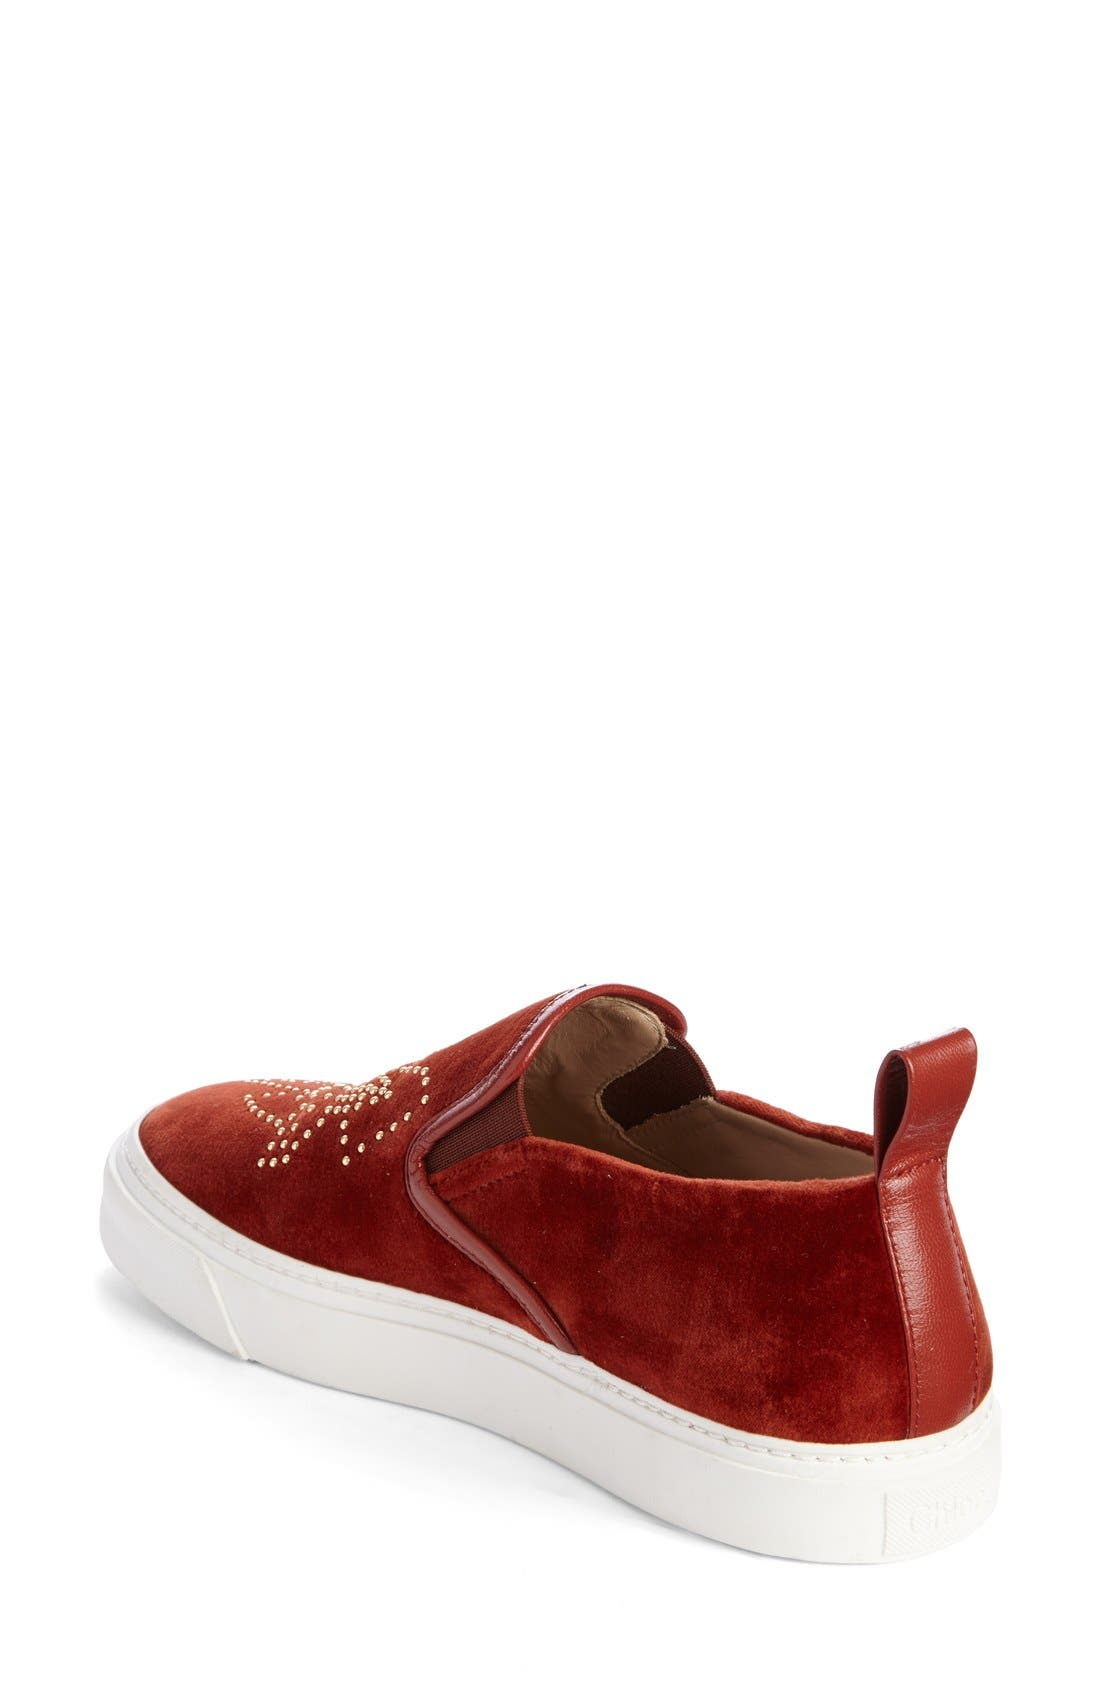 Alternate Image 2  - Chloé 'Ivy' Studded Slip-On Sneaker (Women)